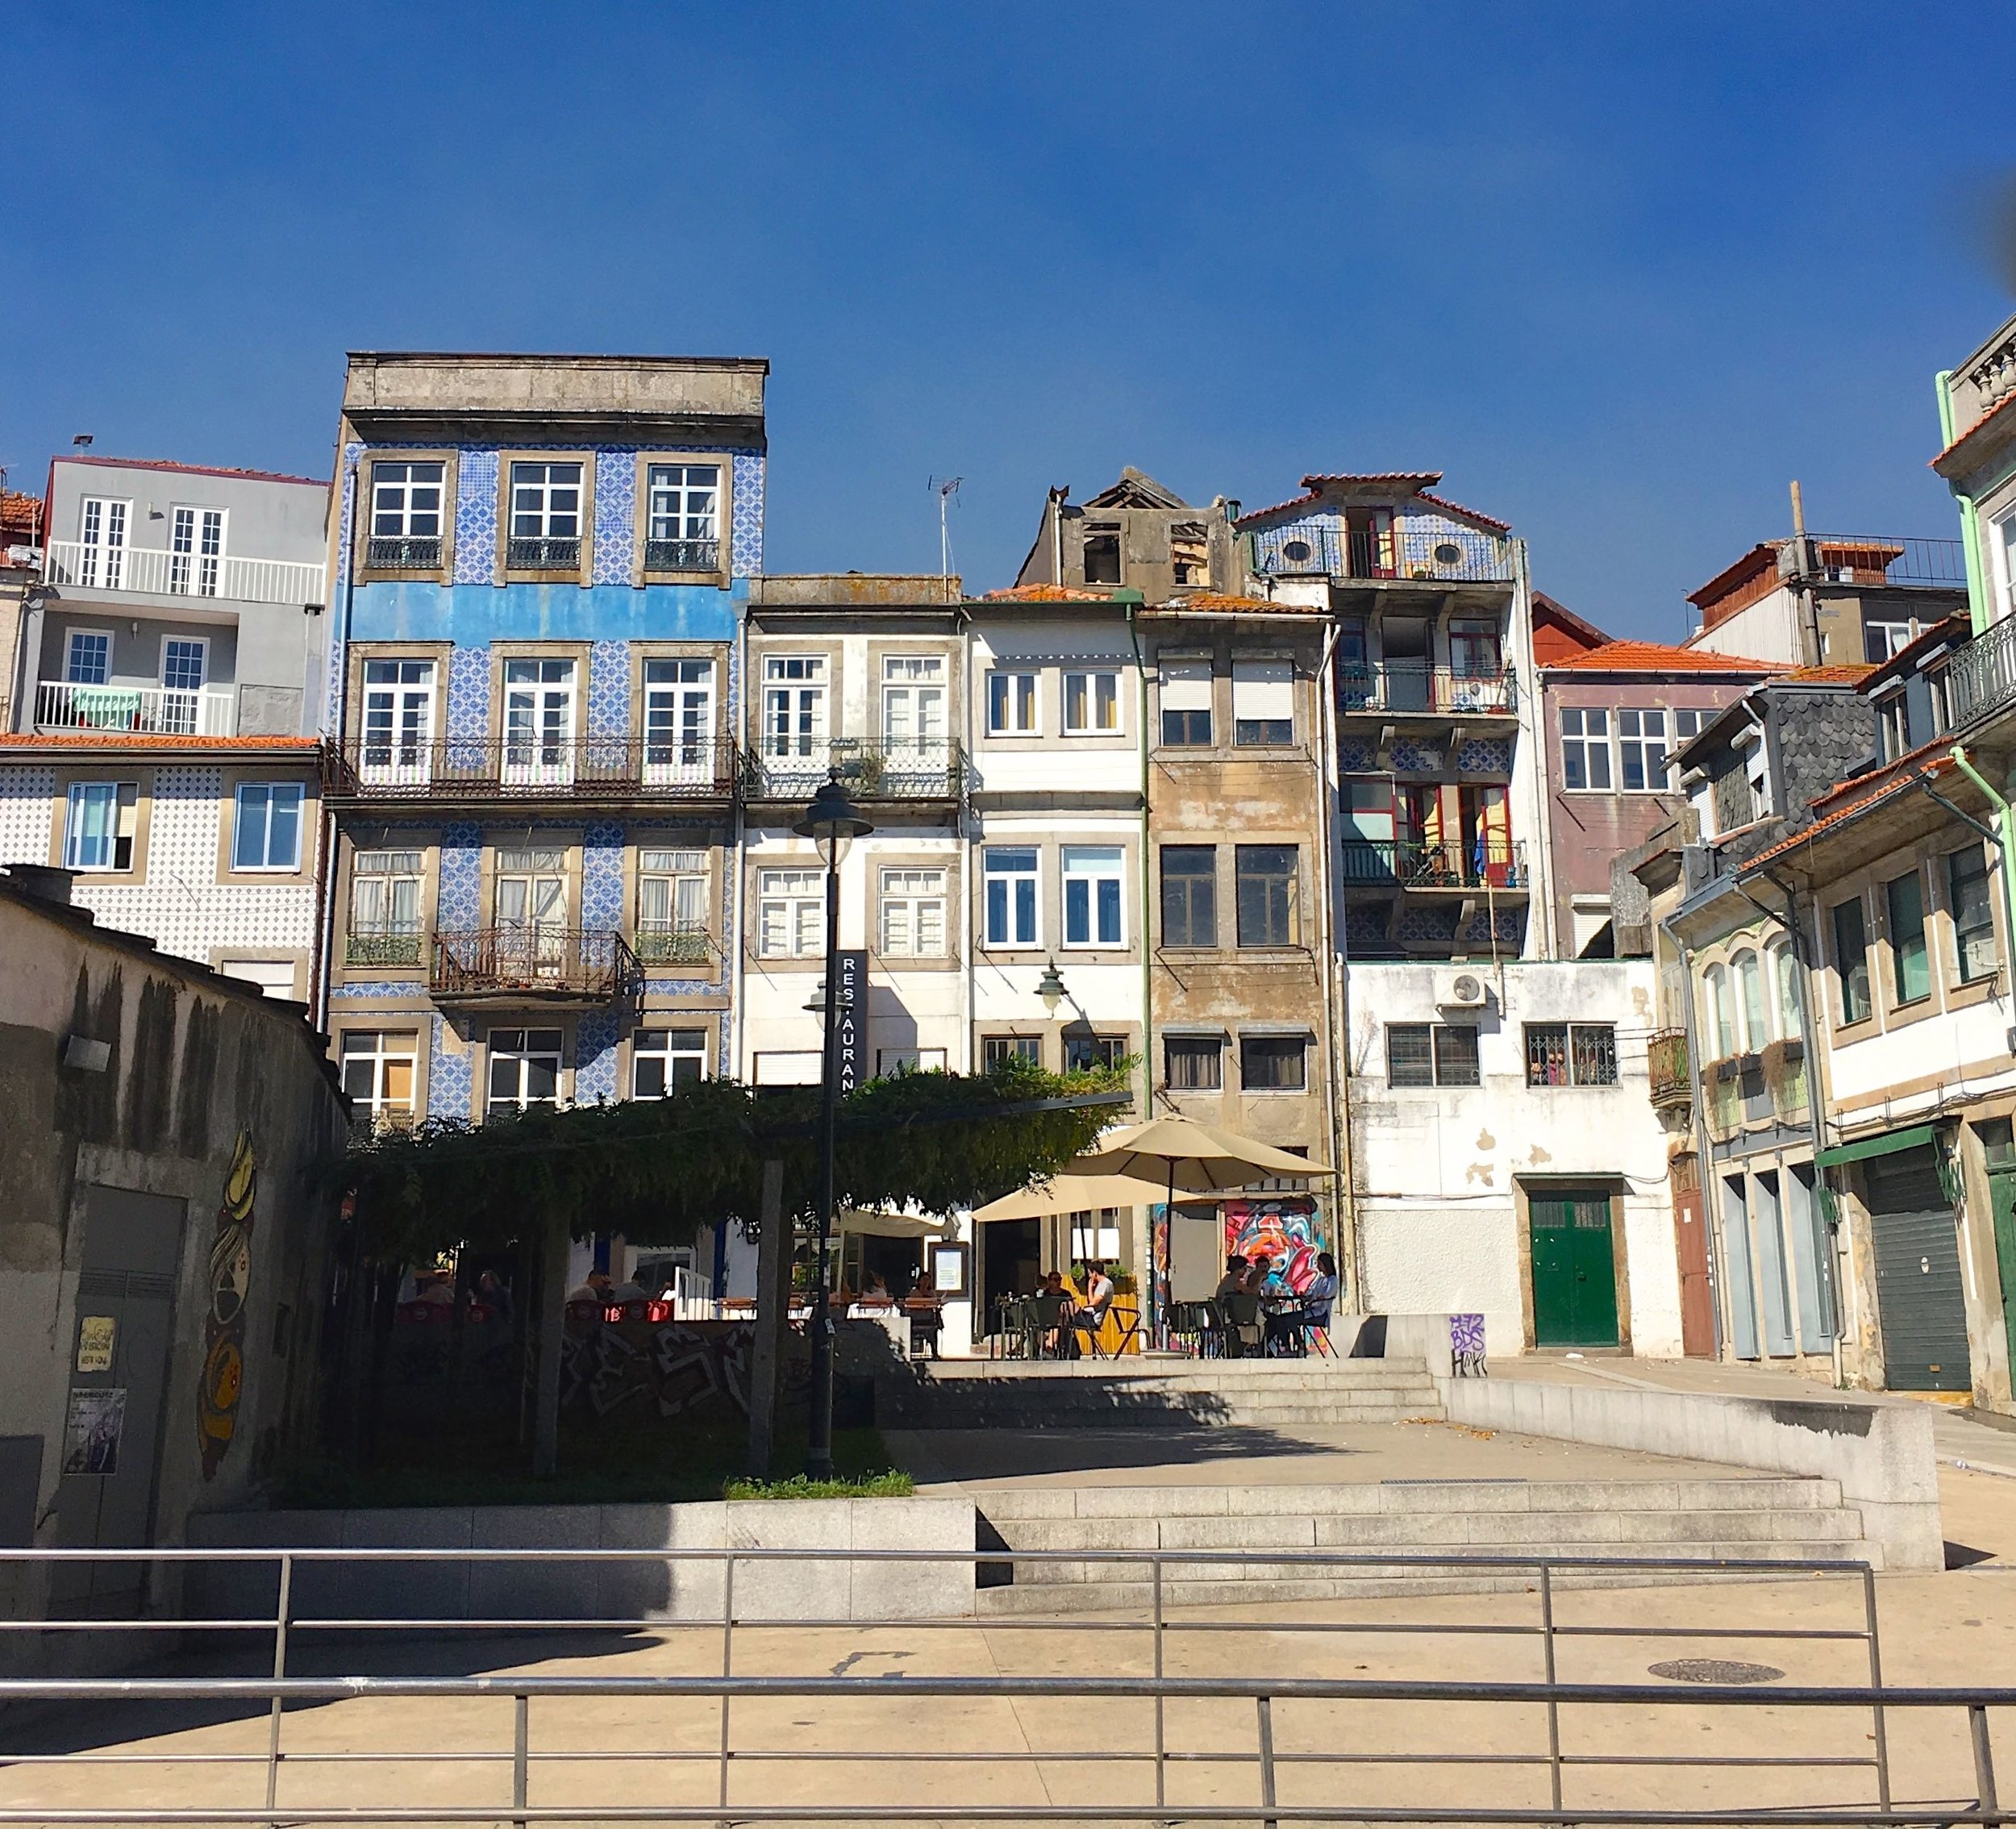 multi-storied buildings in porto with some interesting roof additions